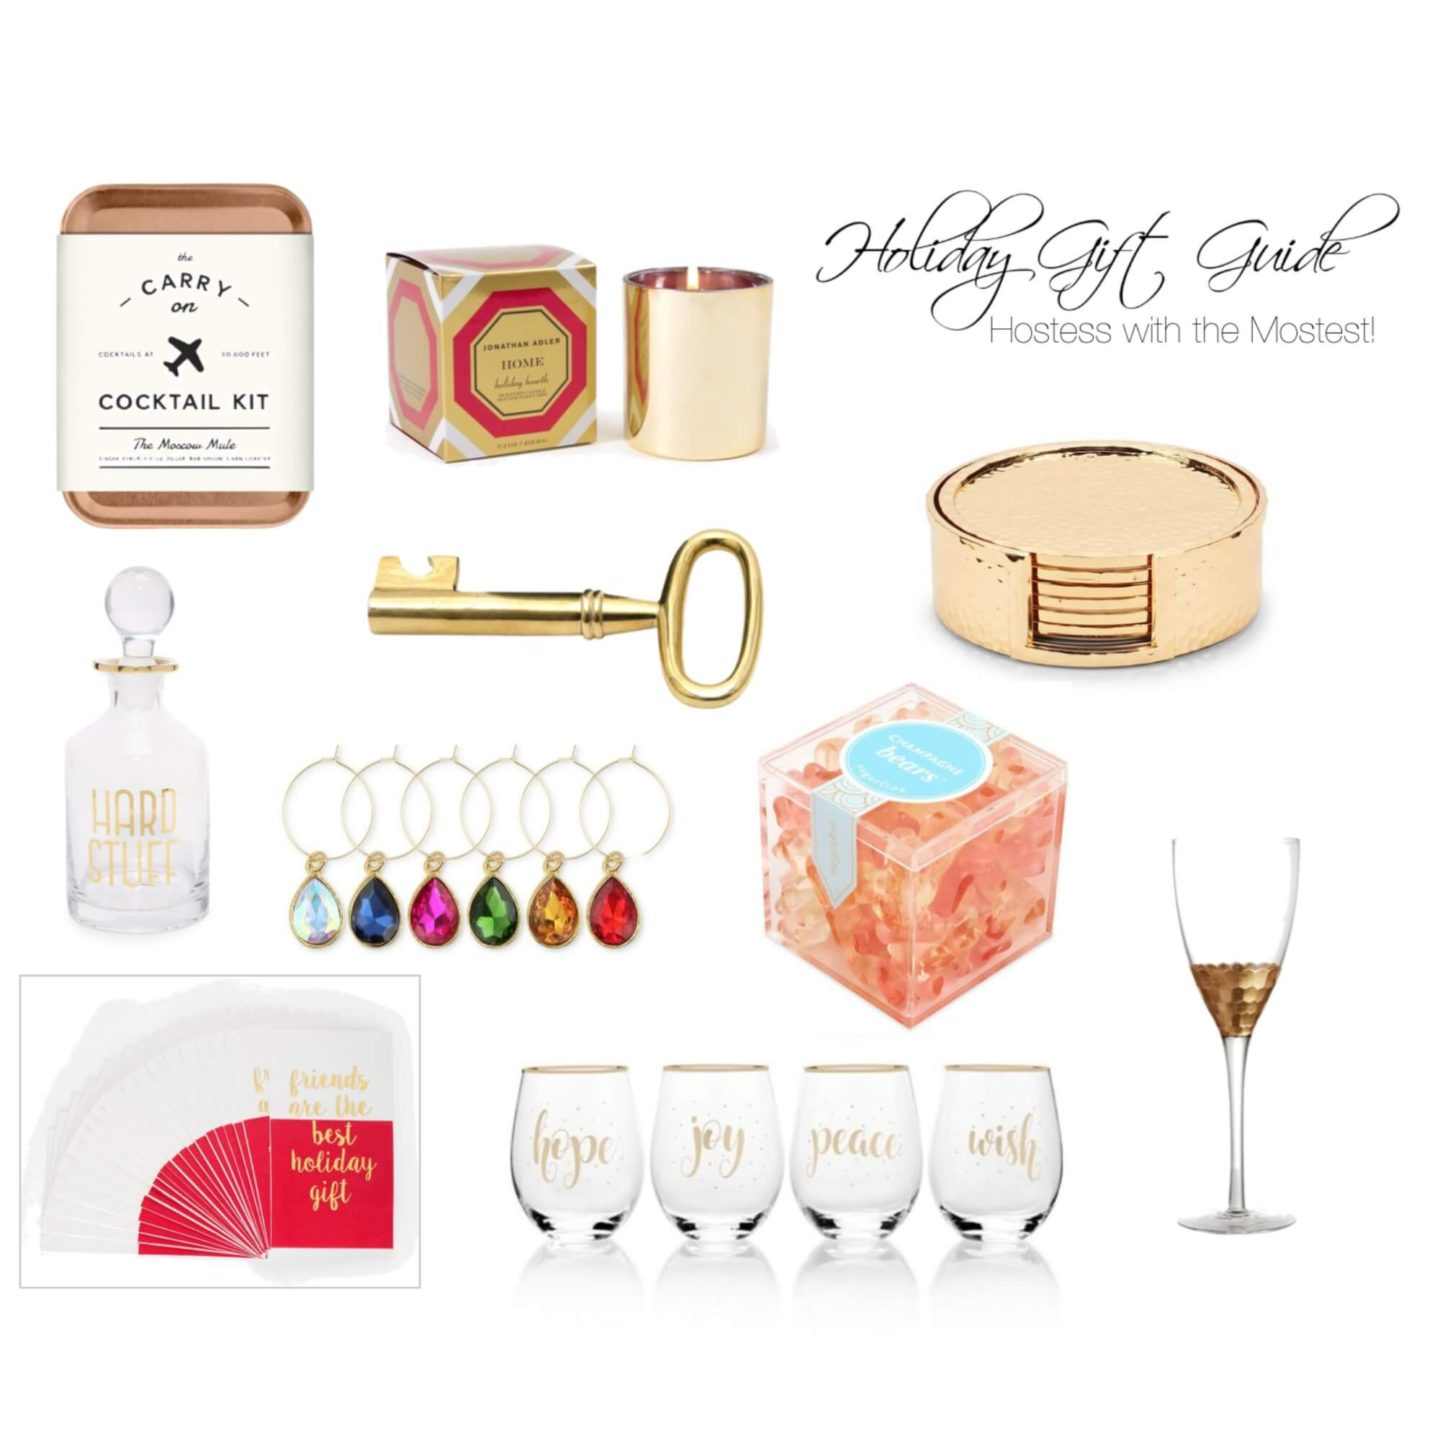 Gift Guide   Hostess with the Mostest!